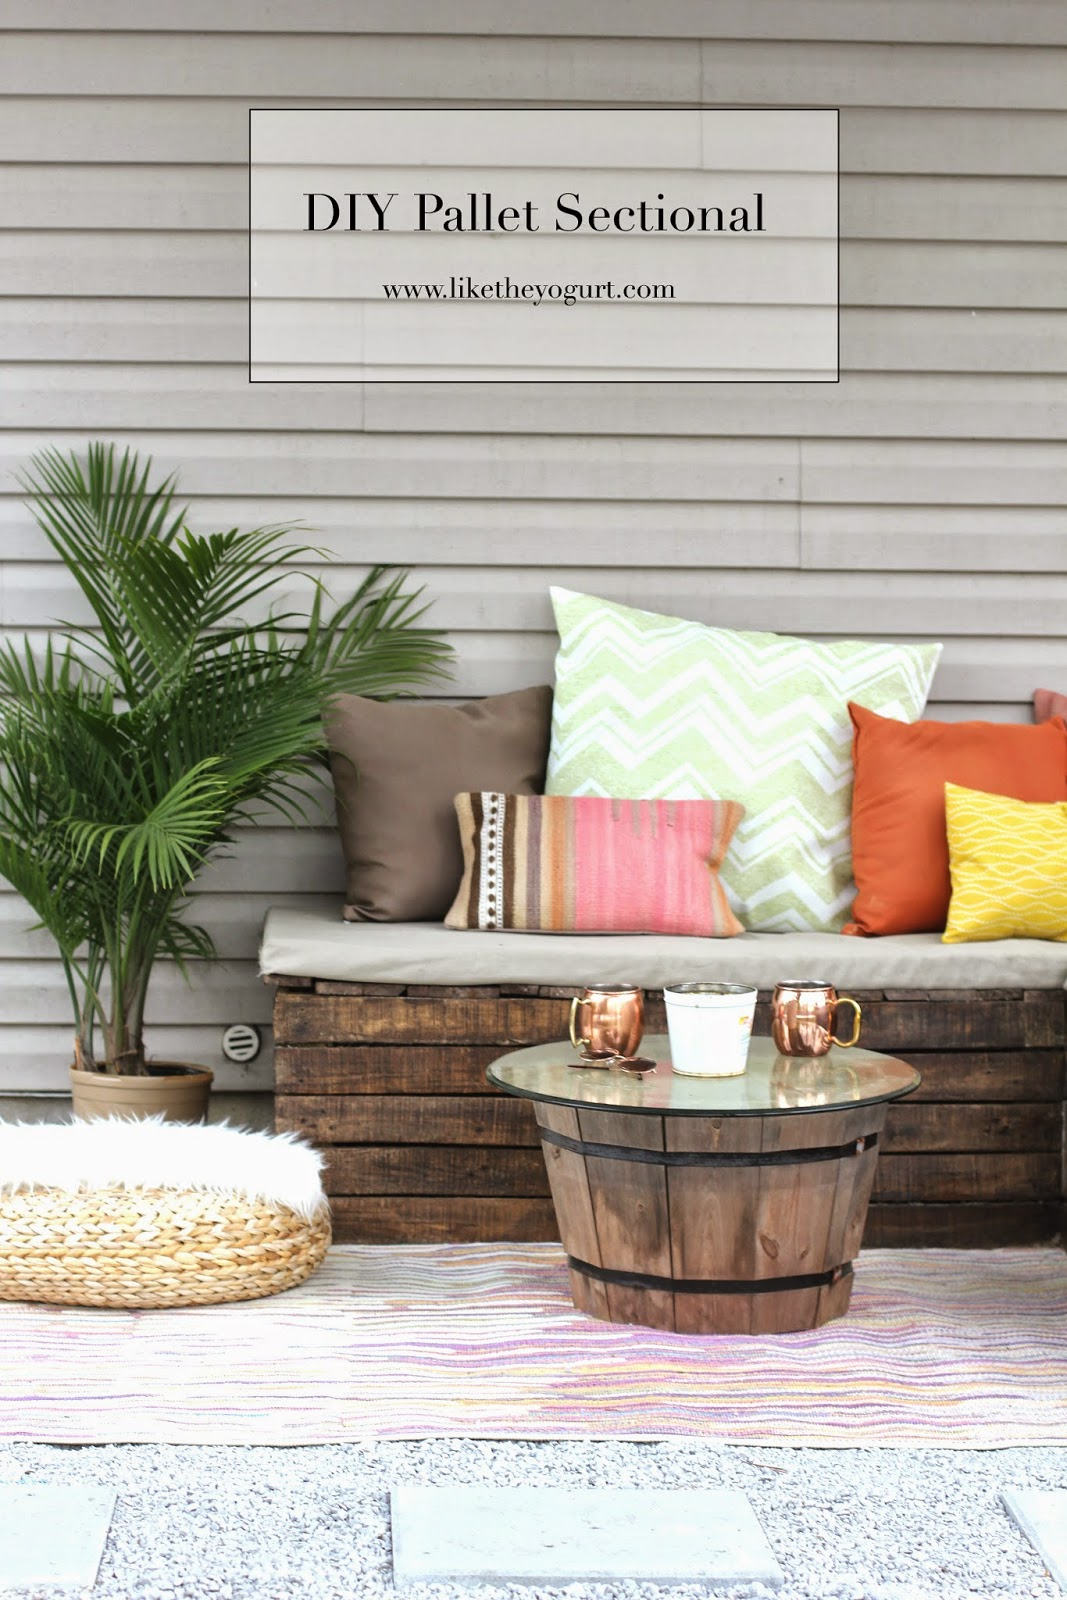 Image of: Diy Pallet Sectional For Outdoor Furniture Like The Yogurt